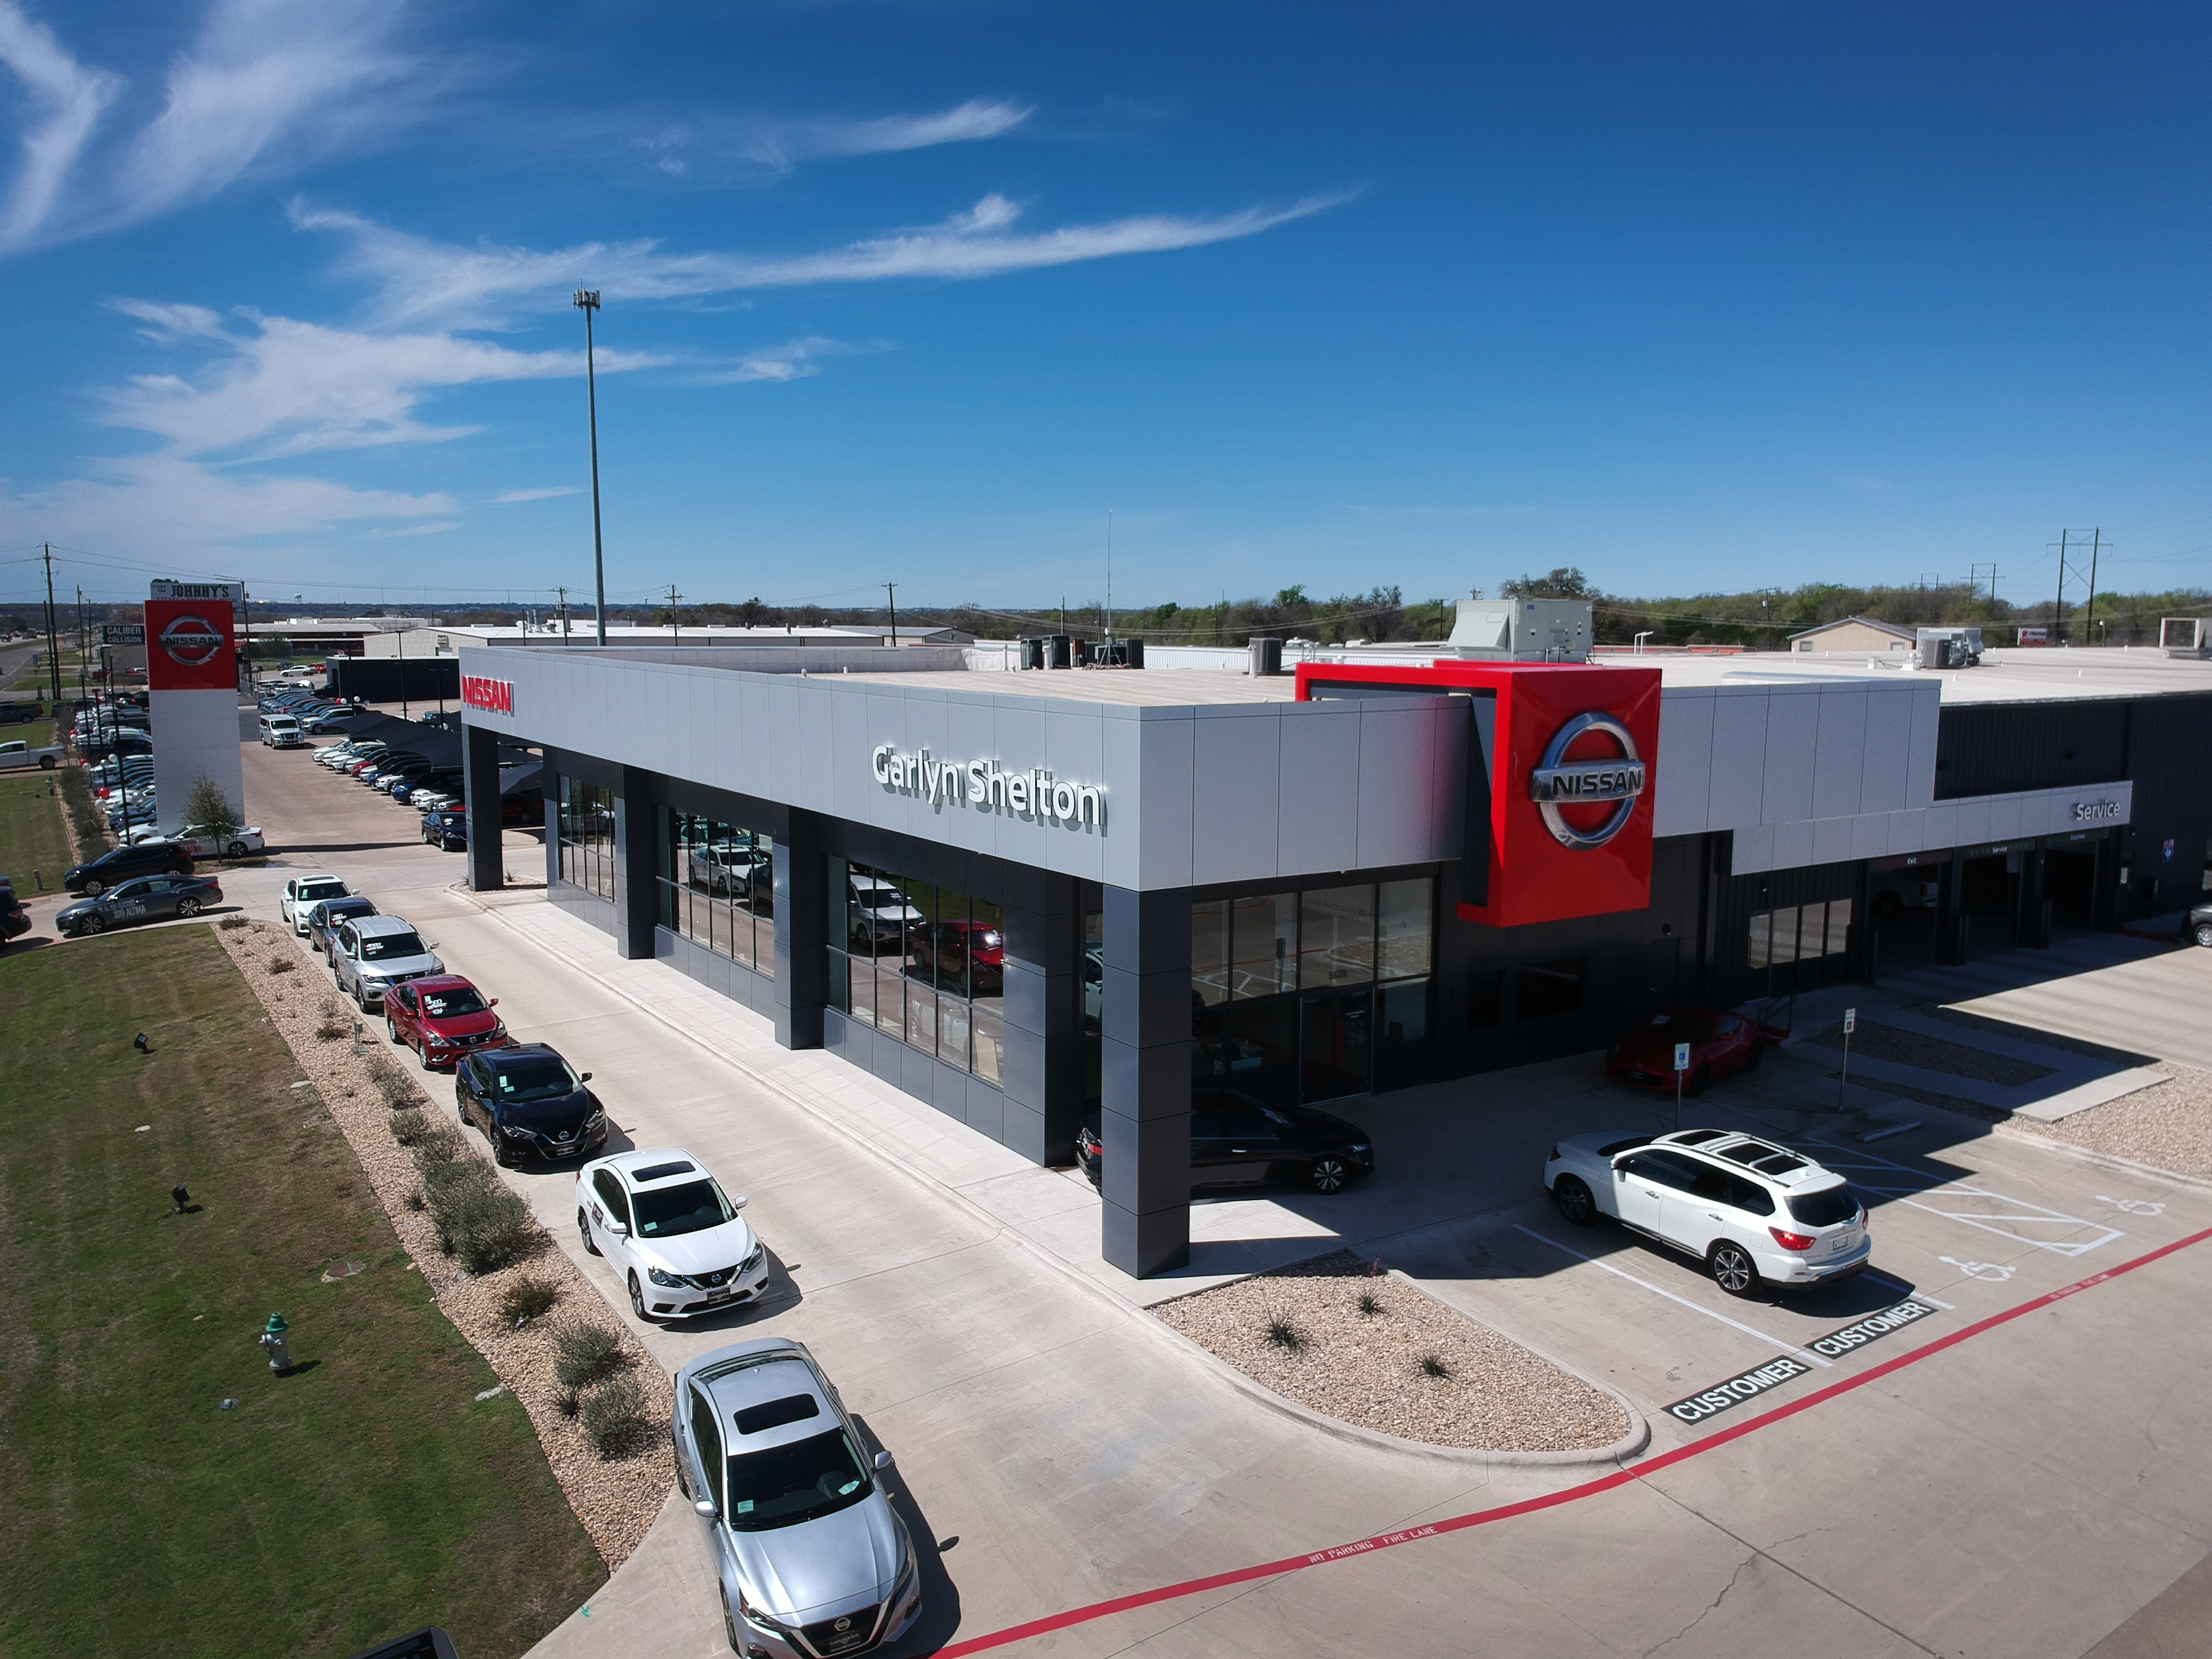 Garlyn Shelton Nissan >> Garlyn Shelton Nissan   Temple, Tx   Neal Architectural Group